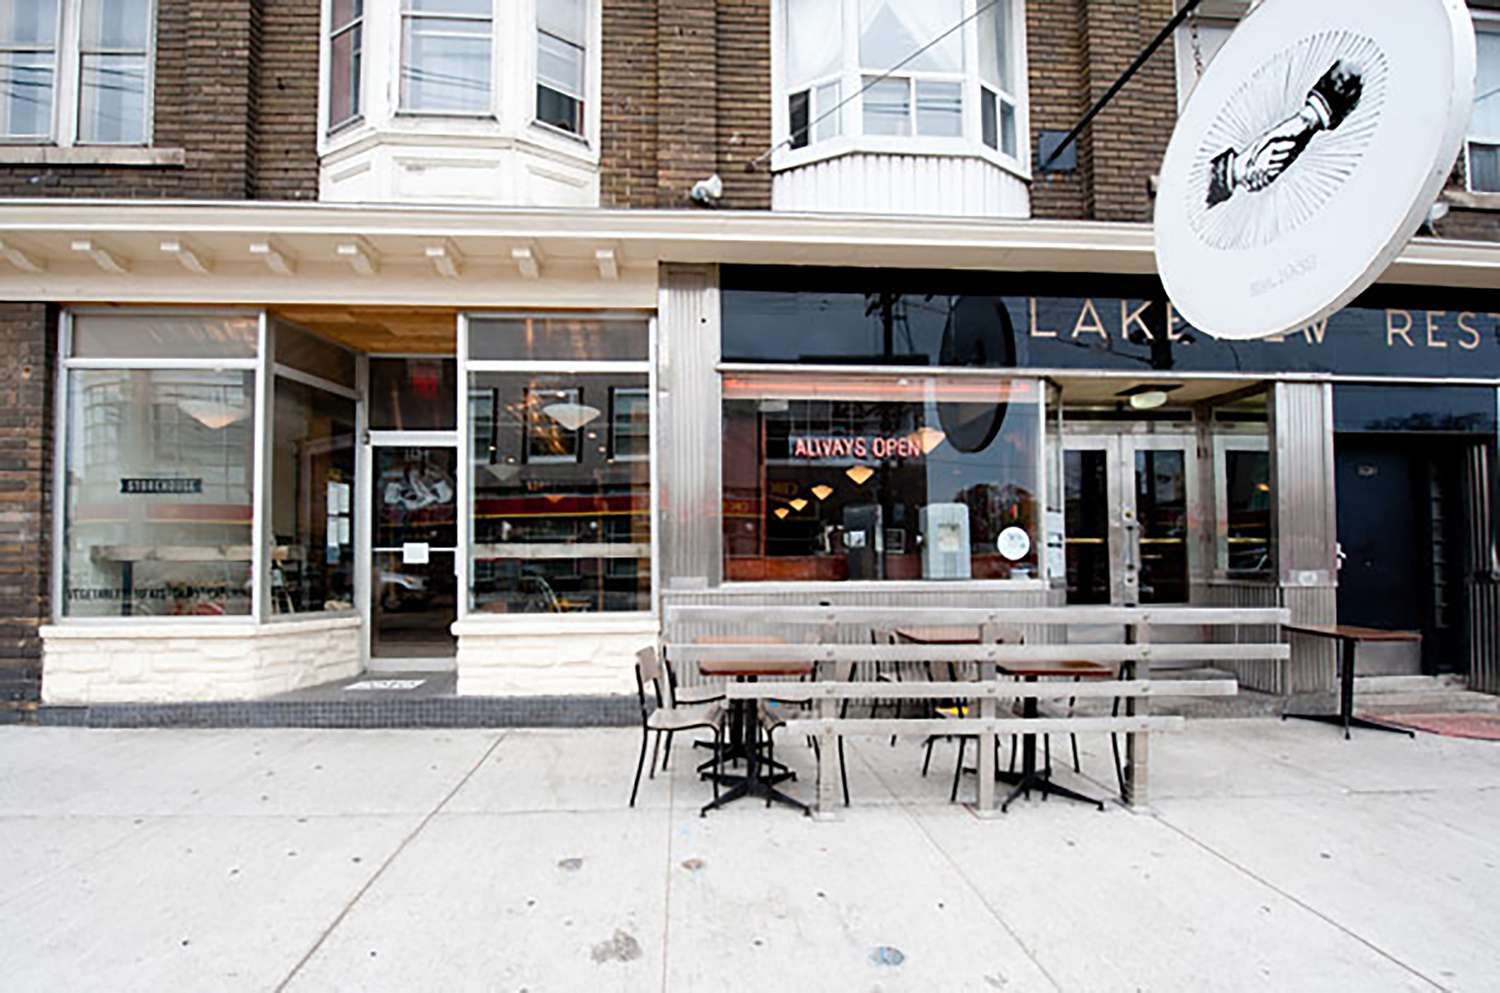 The Lakeview Restaurant